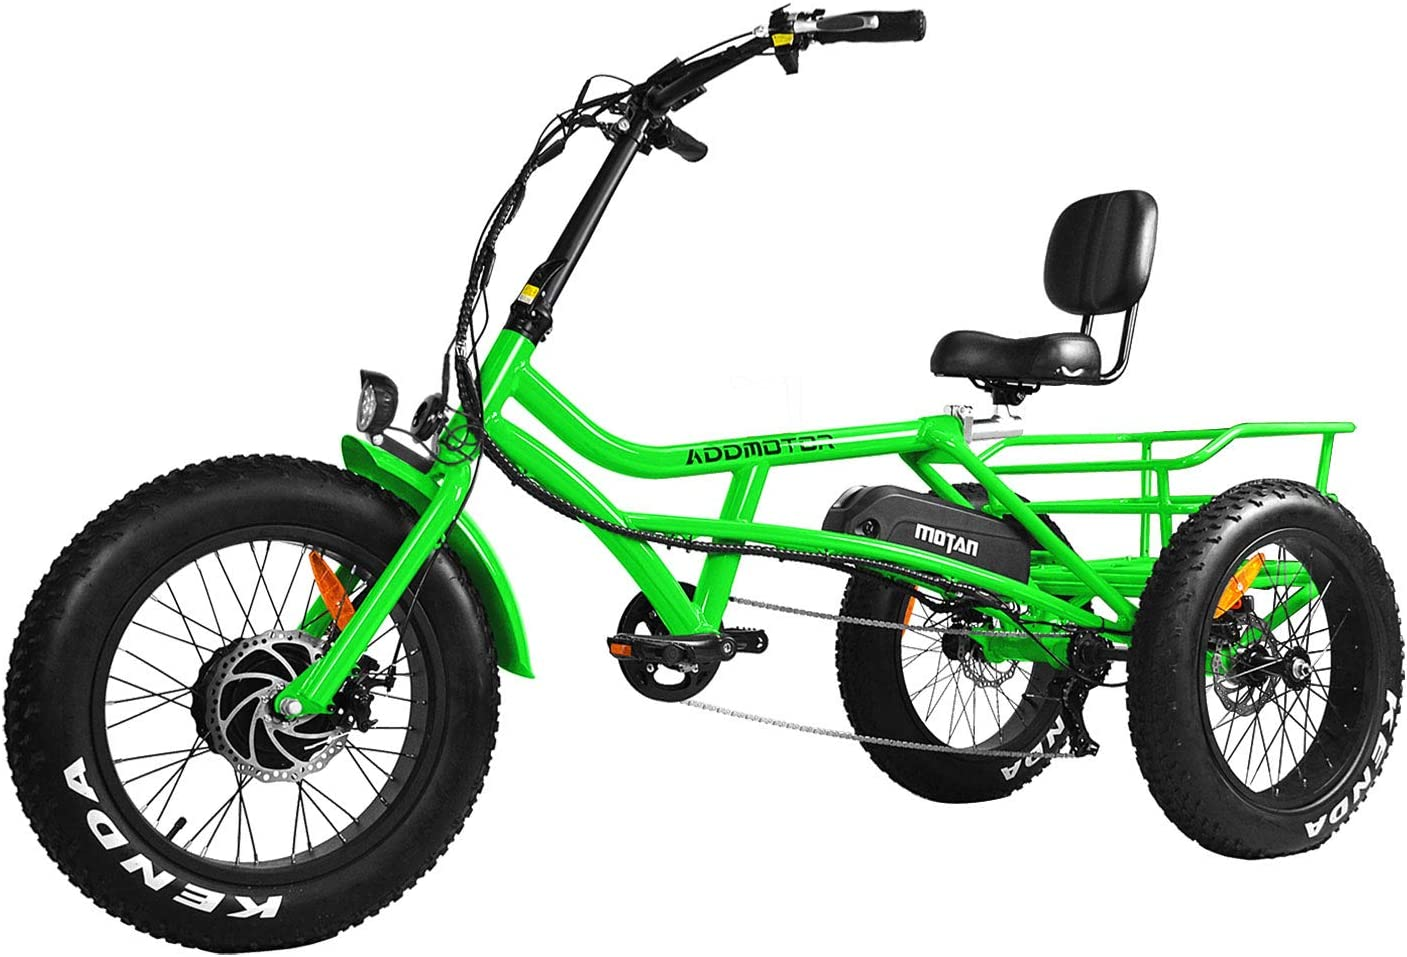 Addmotor Motan Electric Tricycle Adults 16Ah It is very popular 750W 48V Limited Special Price Removable